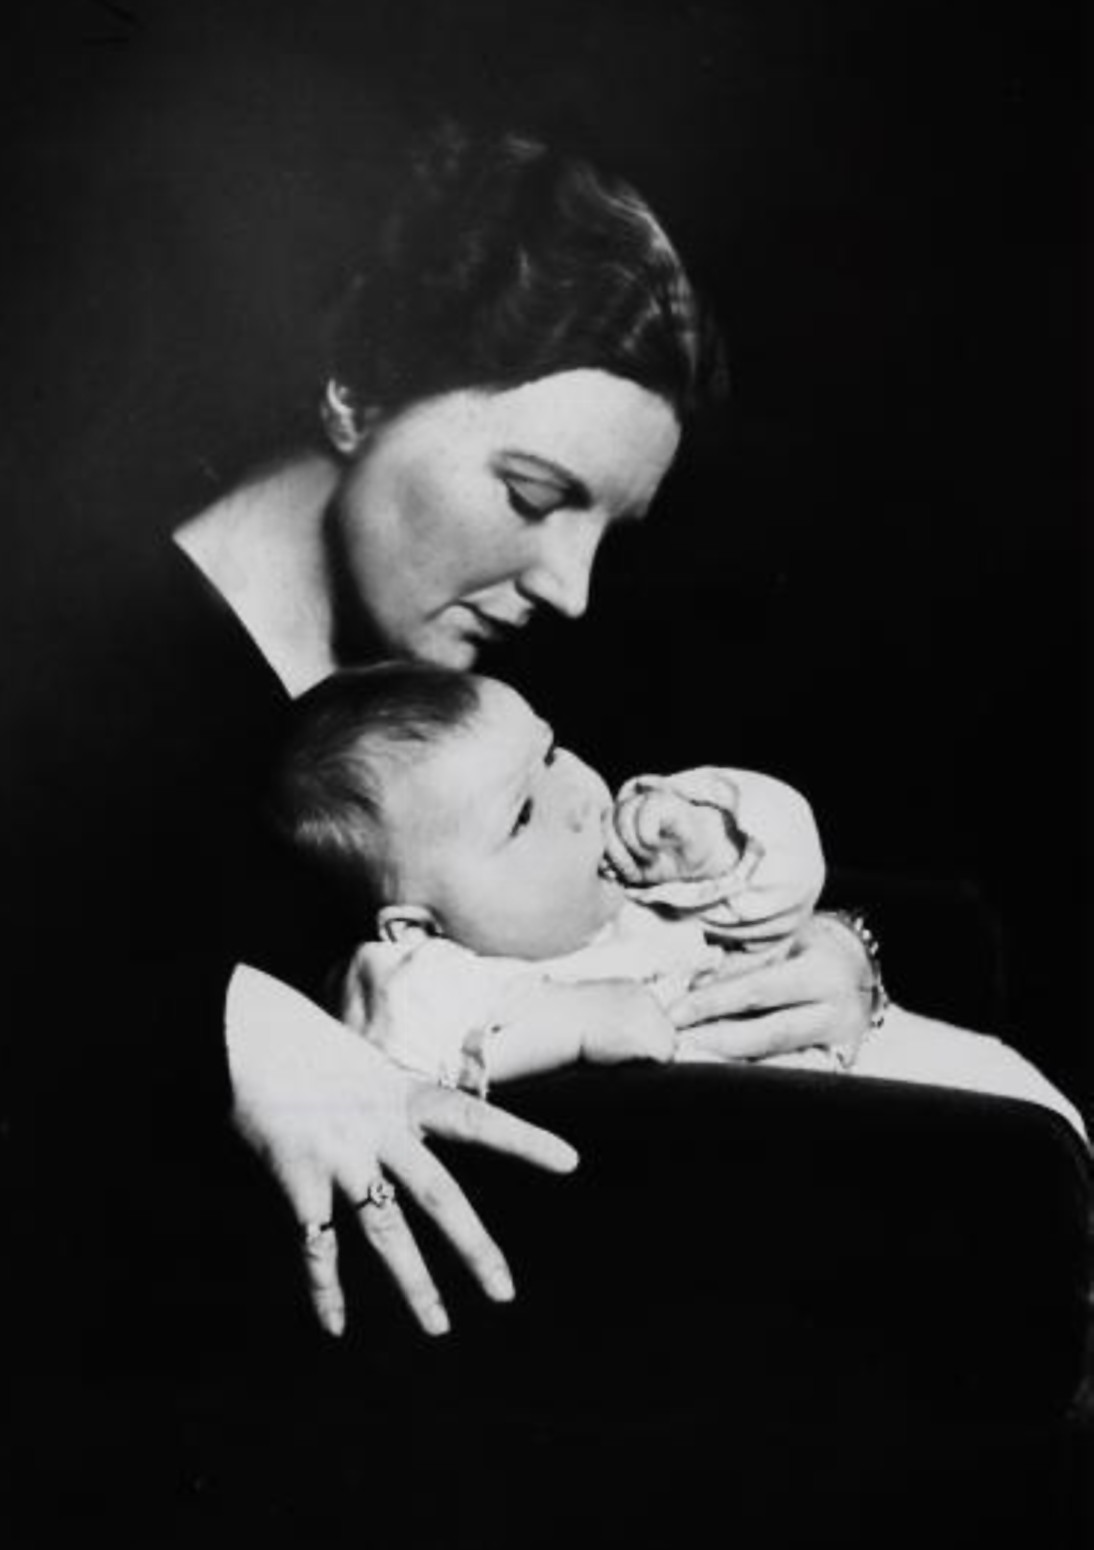 Newborn princess Beatrix with her mother, crown princess Juliana, The Netherlnads, 1938, photoedited and processed by Flickr user shelteringskies.